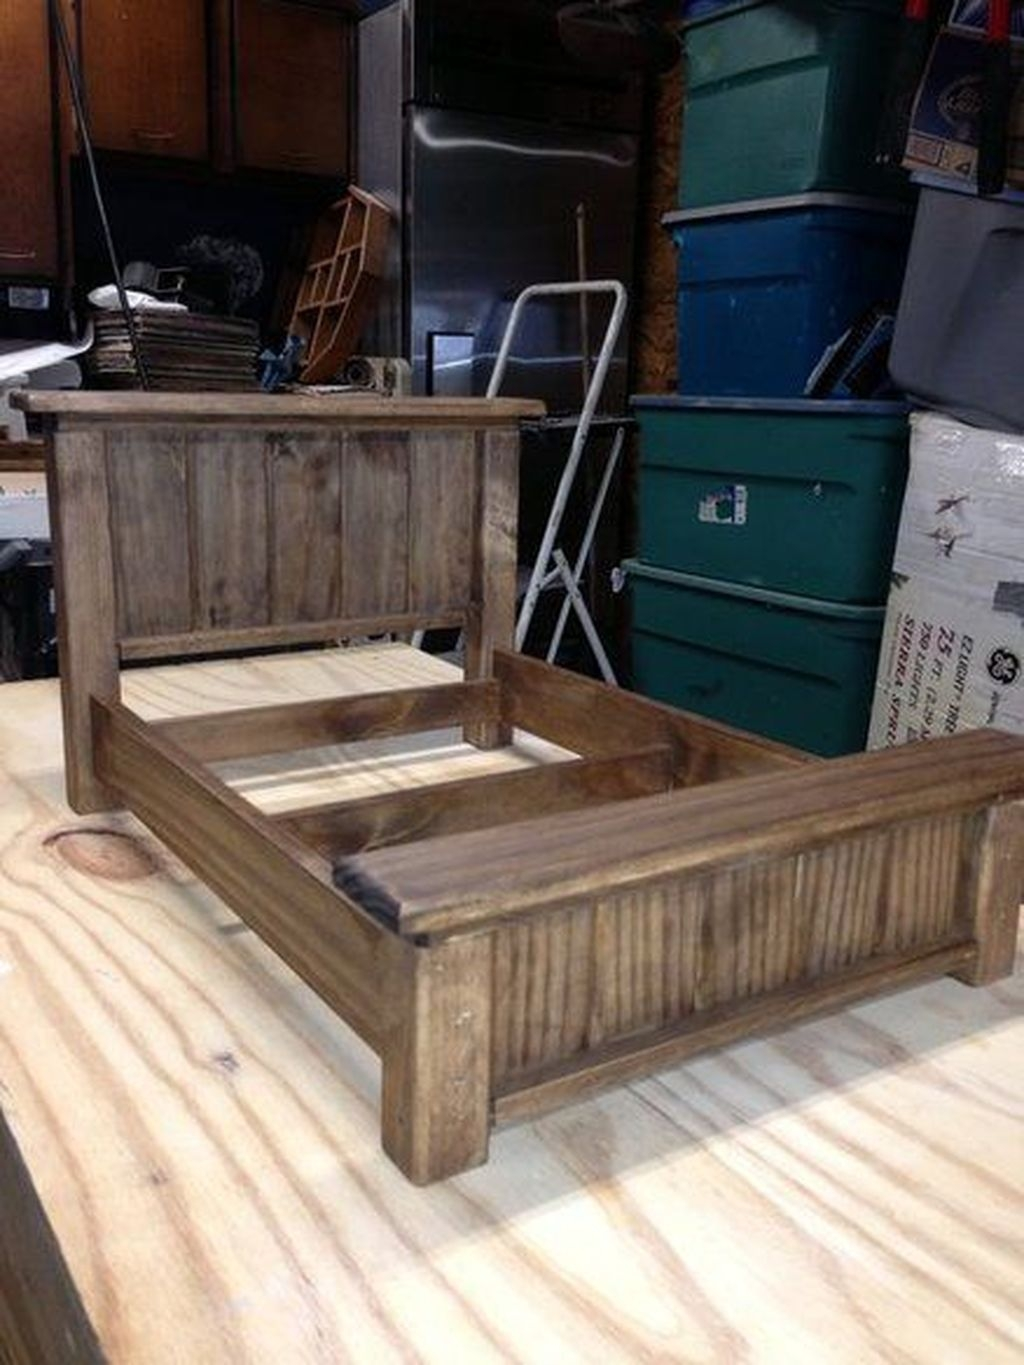 Unordinary Recycled Pallet Bed Frame Ideas To Make It Yourself16